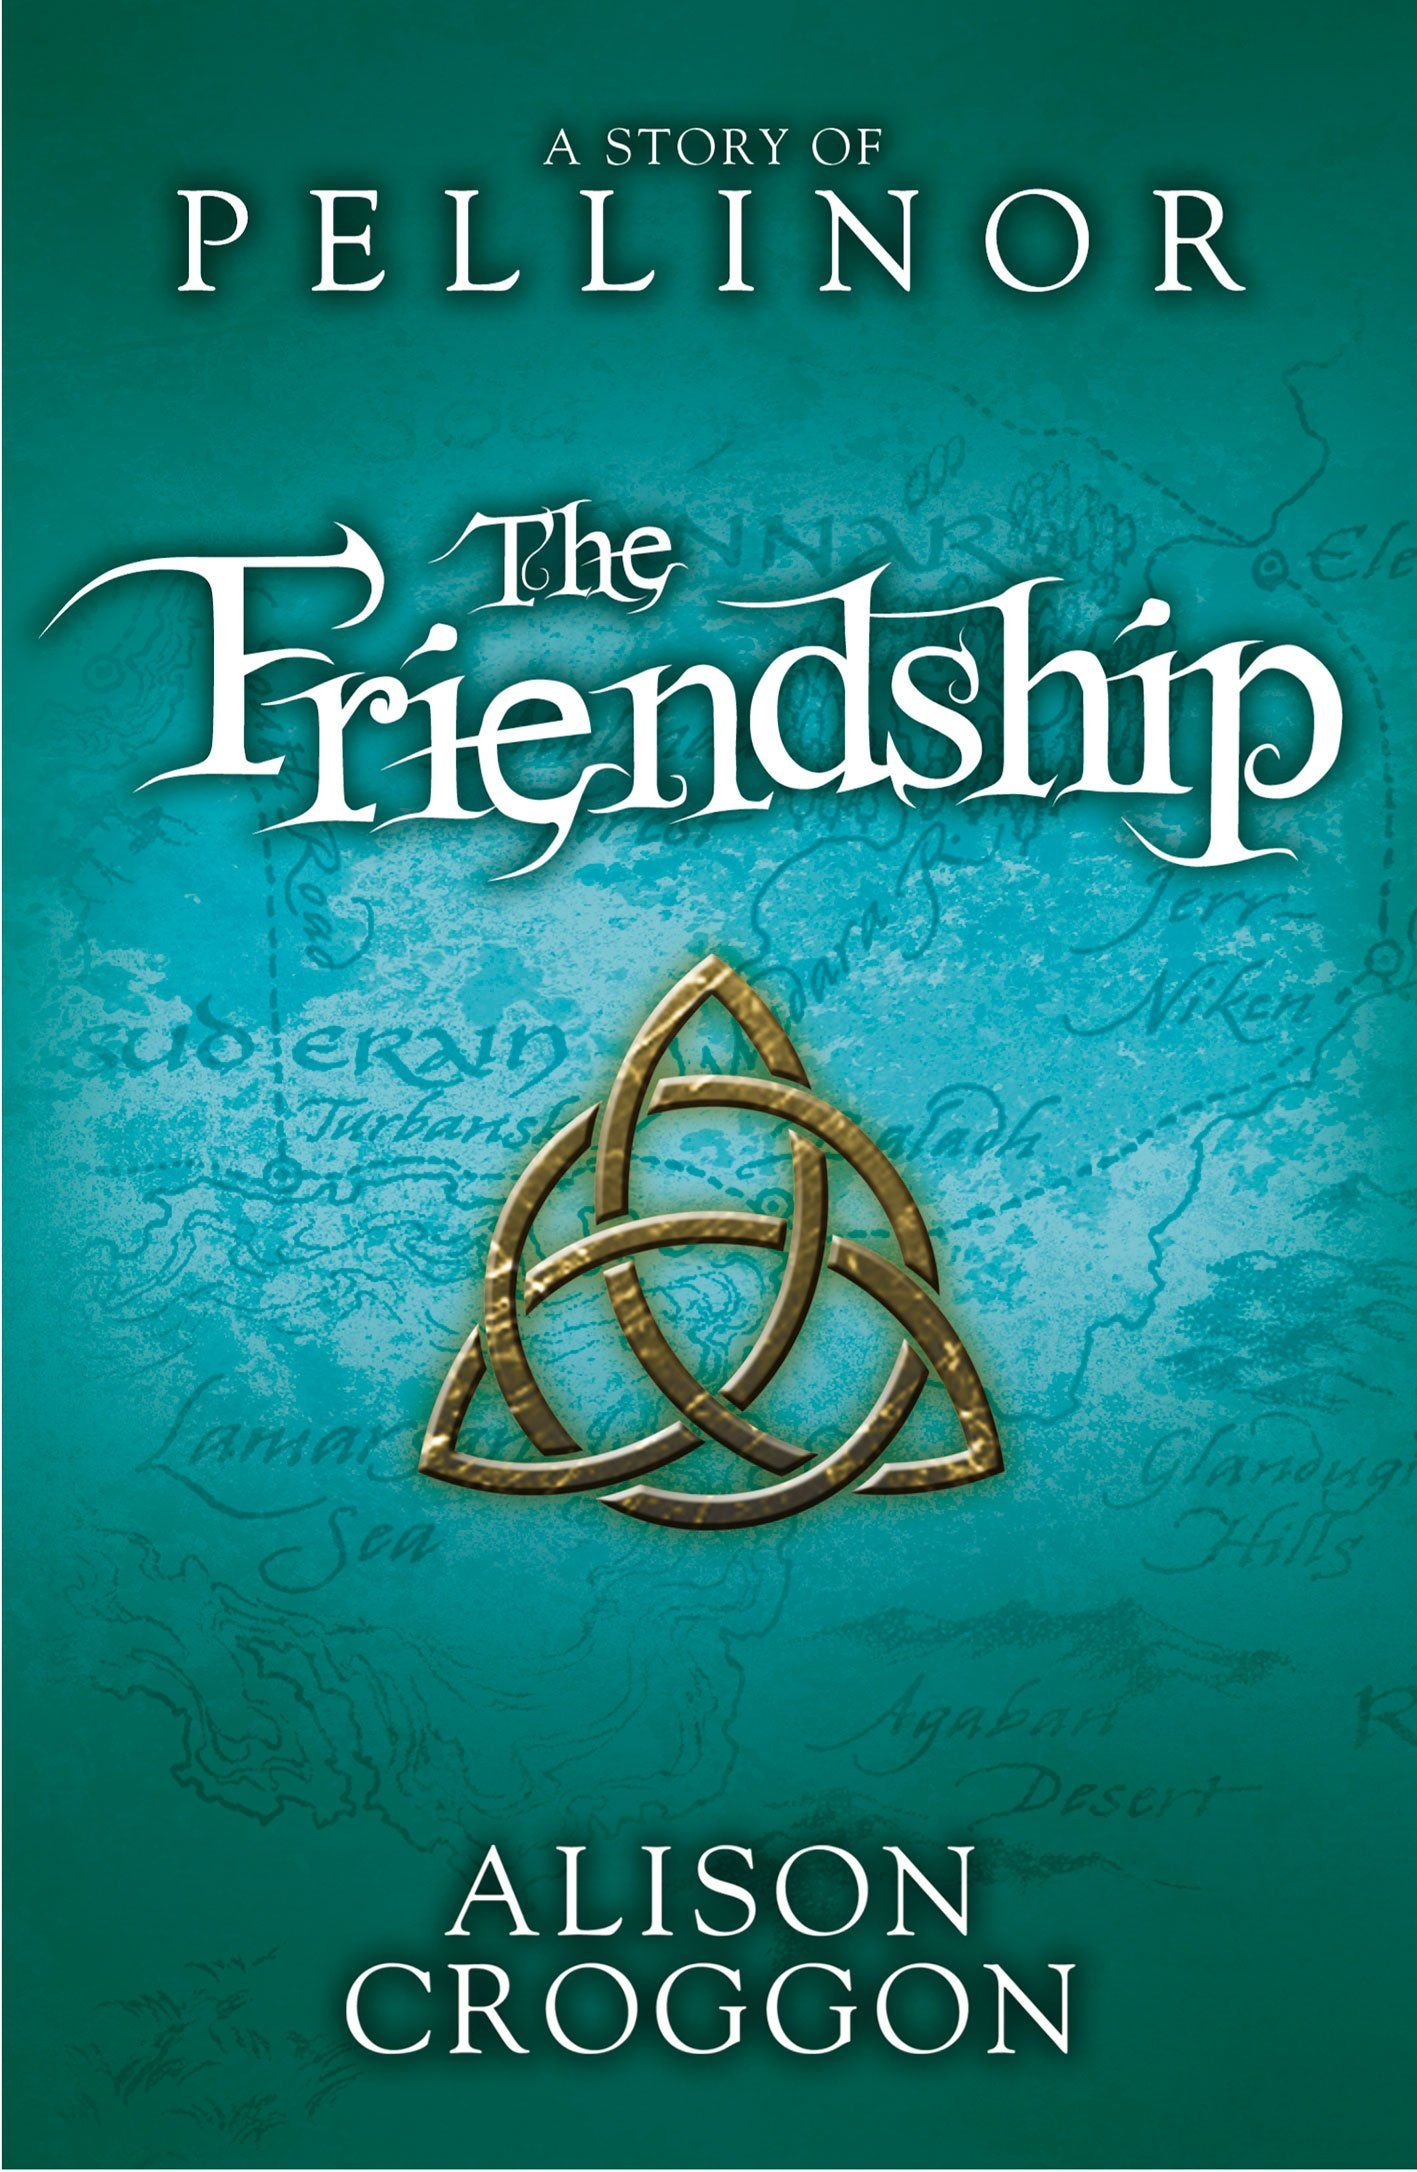 Find it the friendship enovella for pellinor series by find it the friendship enovella for pellinor series by alison croggon fandeluxe Choice Image